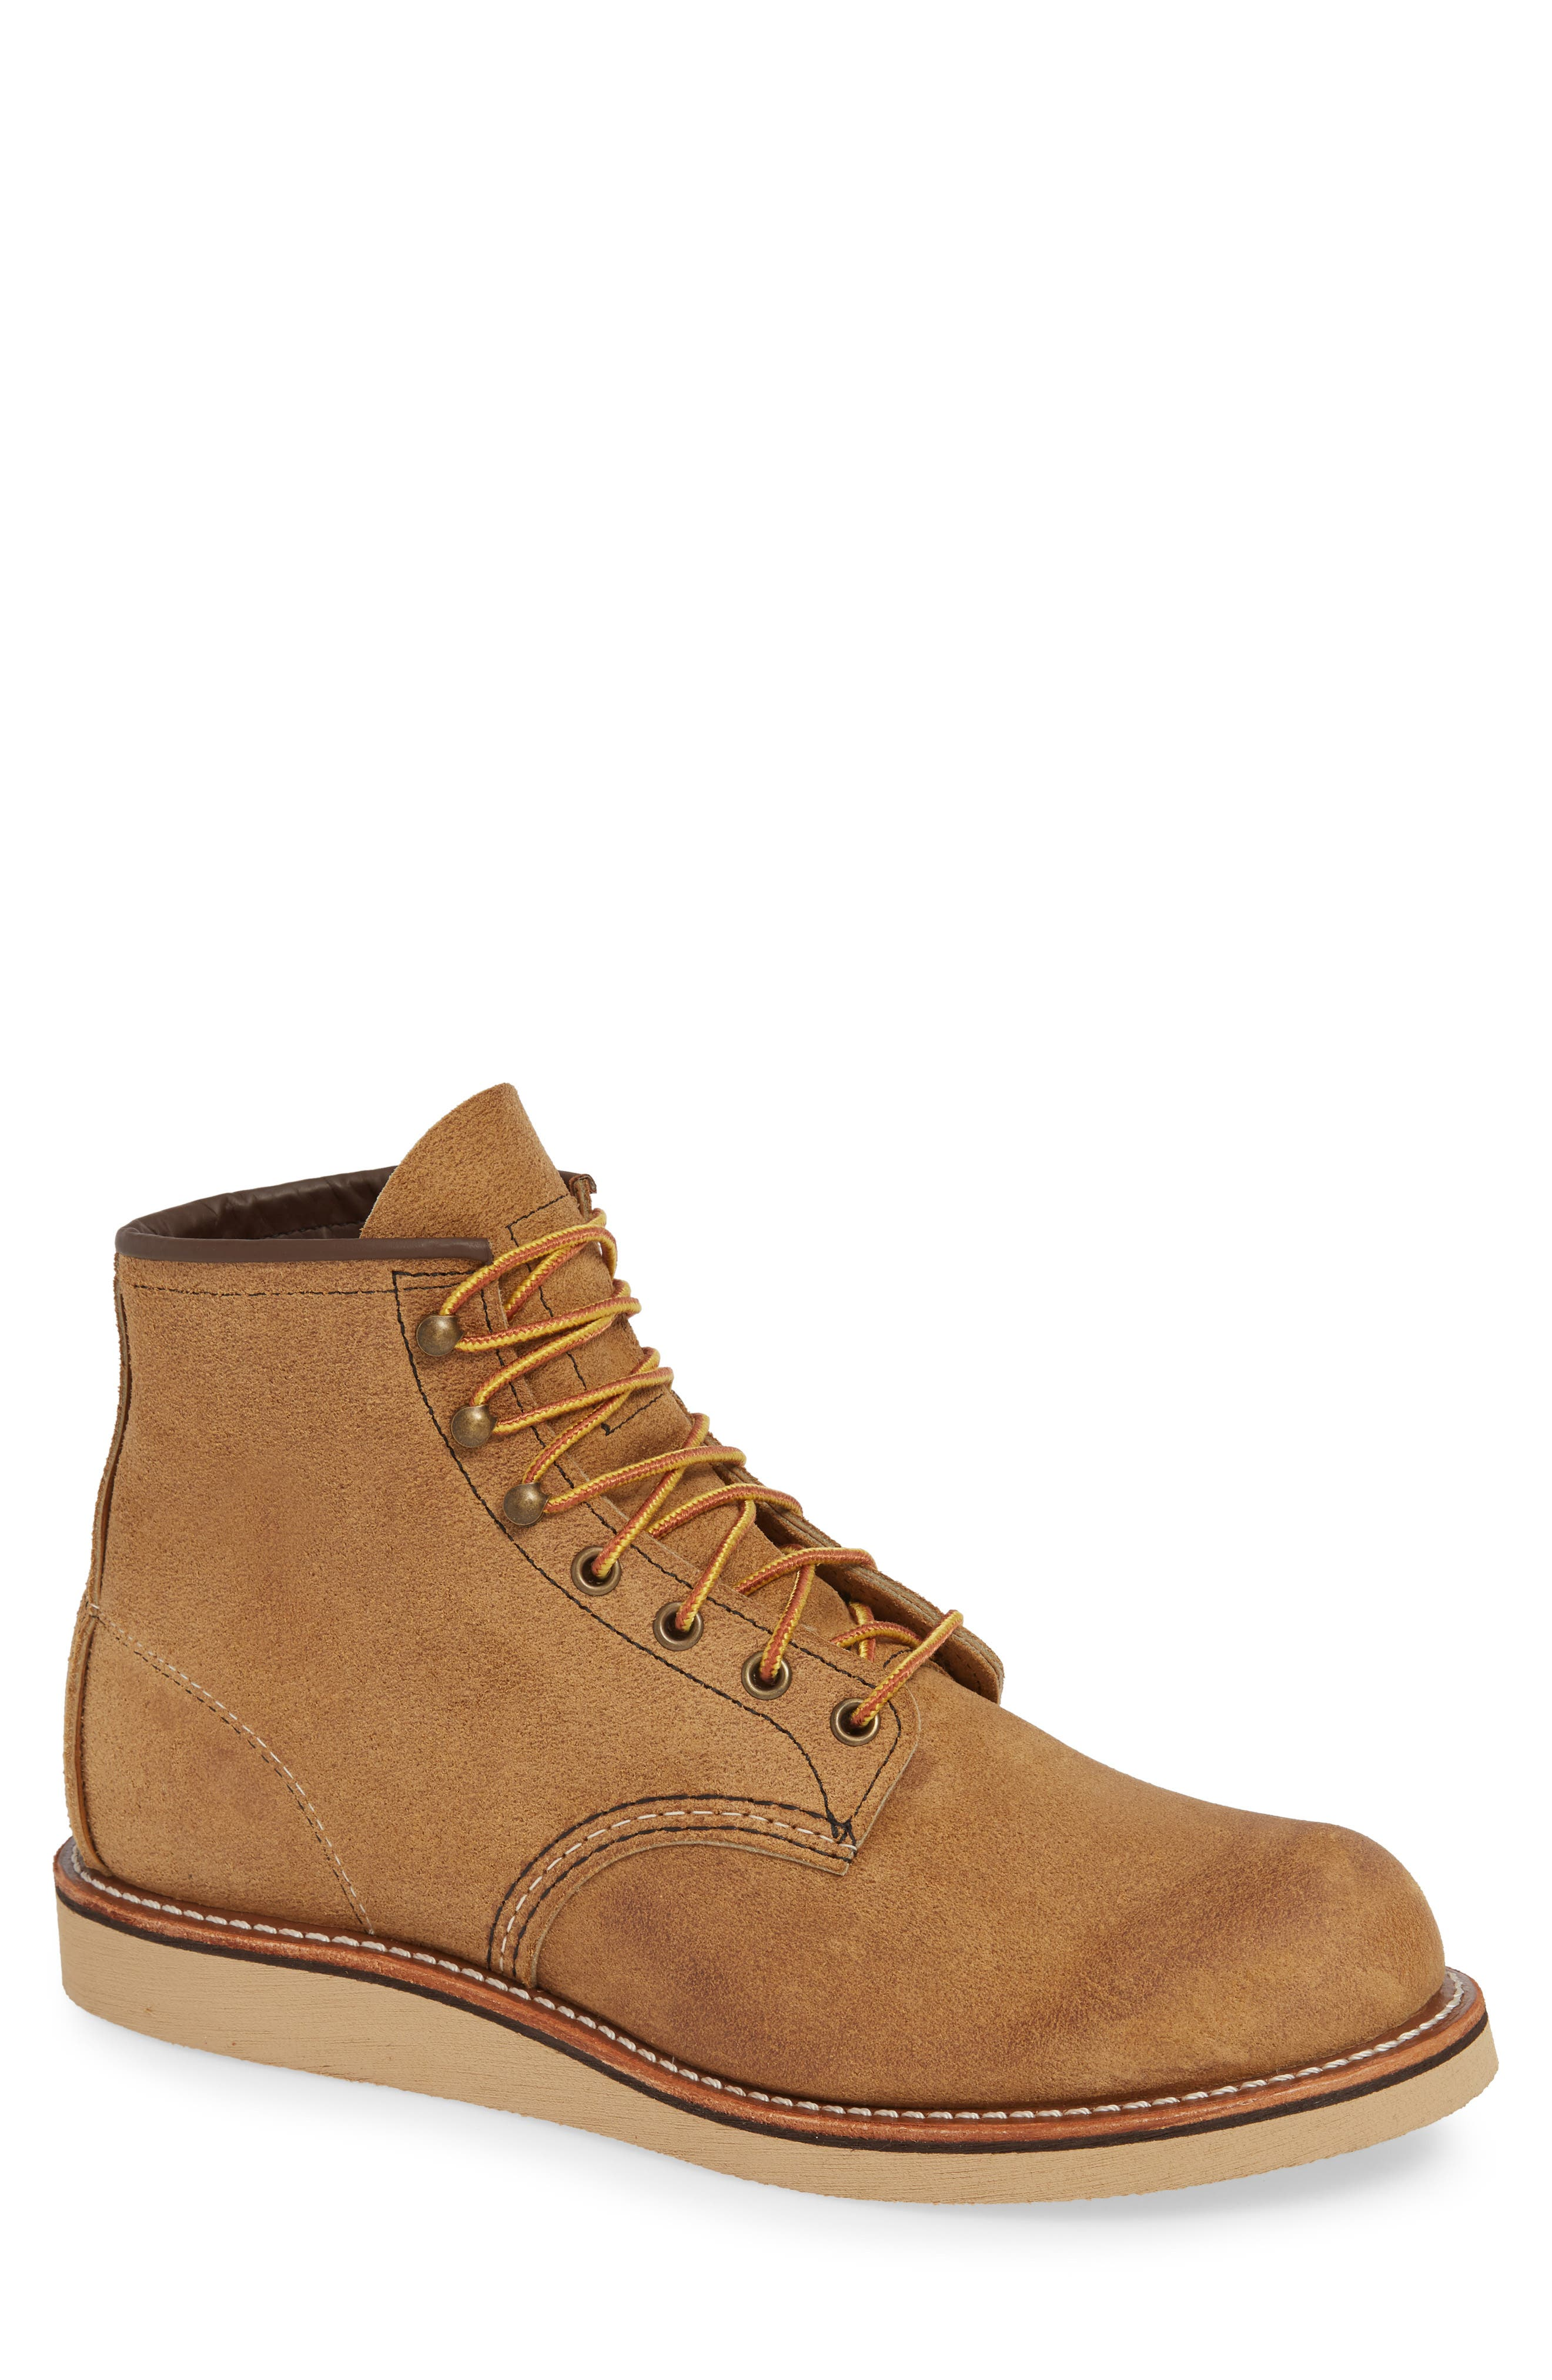 RED WING Rover Plain Toe Boot in Hawthorne Leather